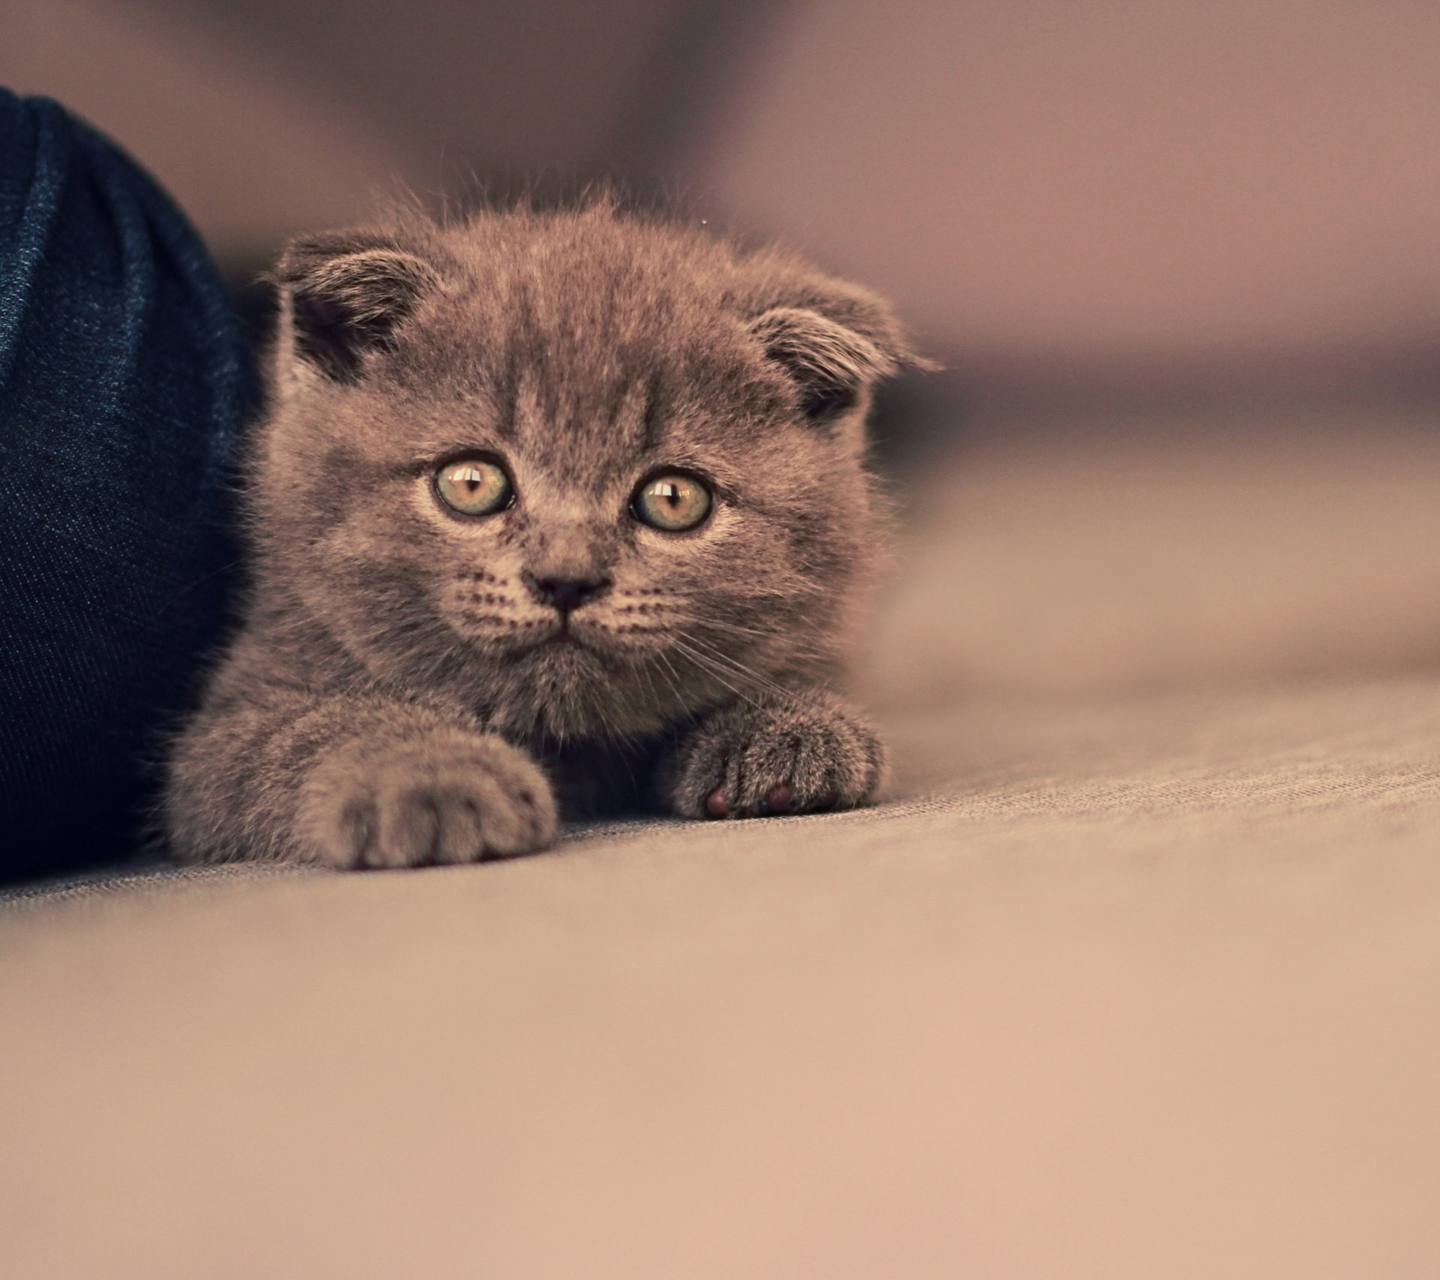 Samsung Galaxy S3 Wallpaper Sweet Cat Hd Wallpapers 9to5wallpapers